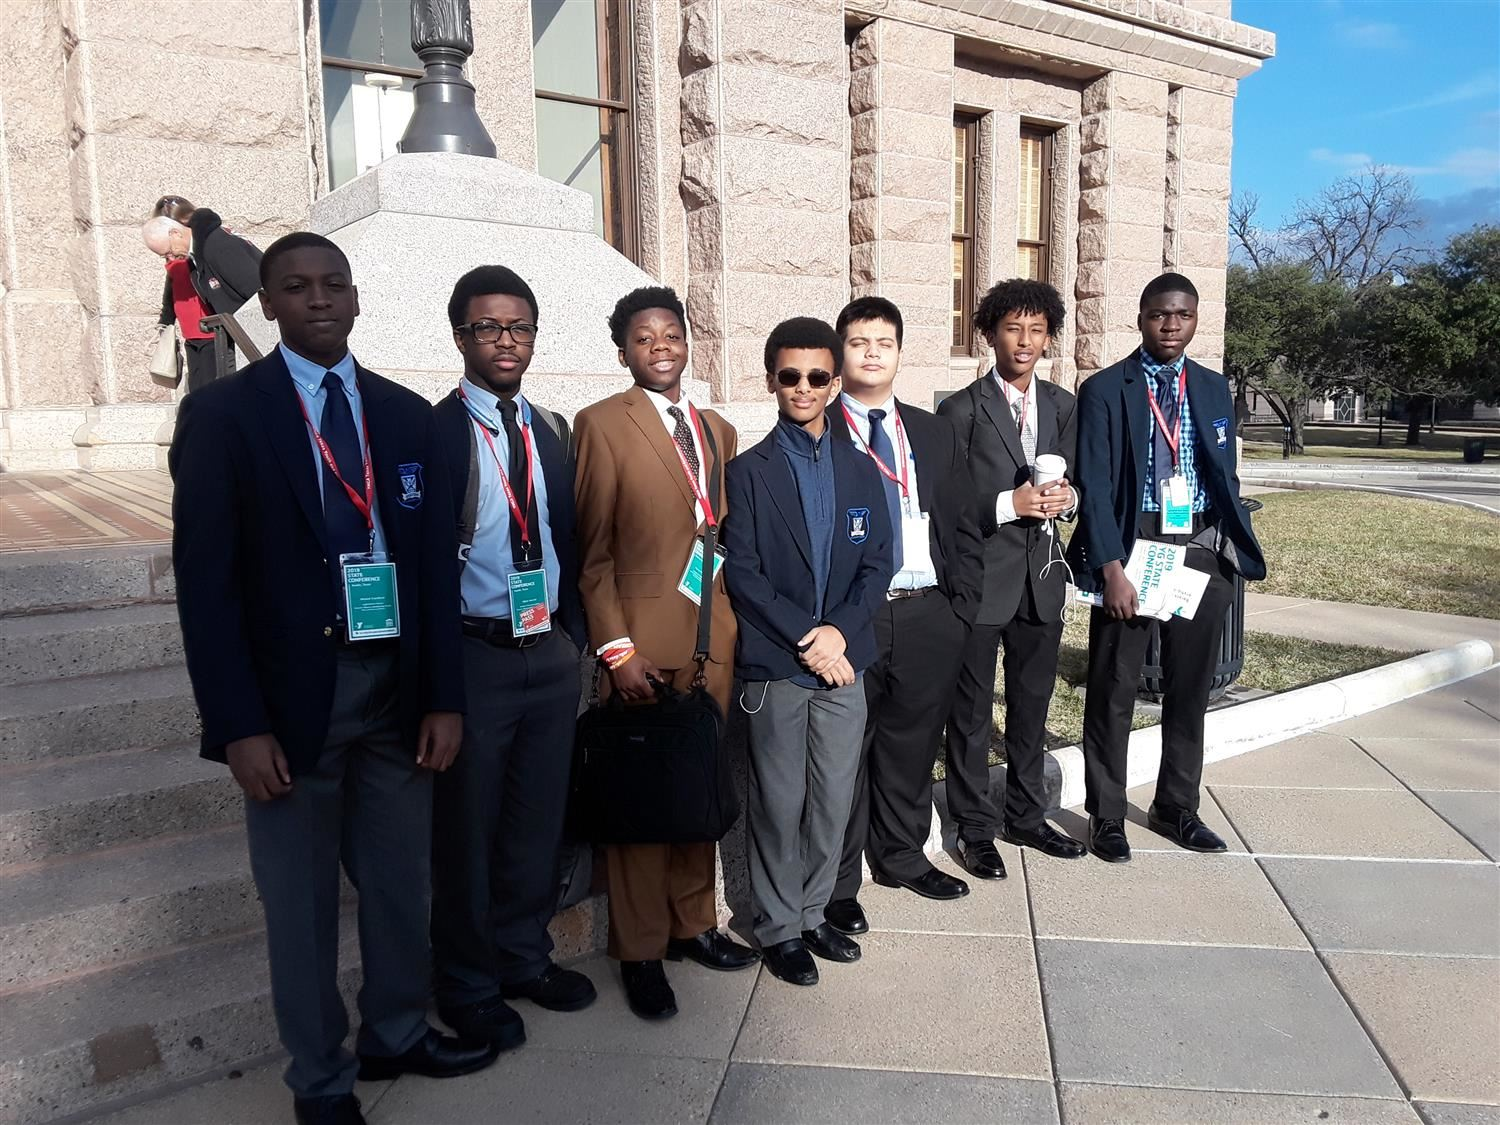 Bomla chapter of YMCA Youth and Government members leave their mark at the state conference in Austin this weekend January 24-27.